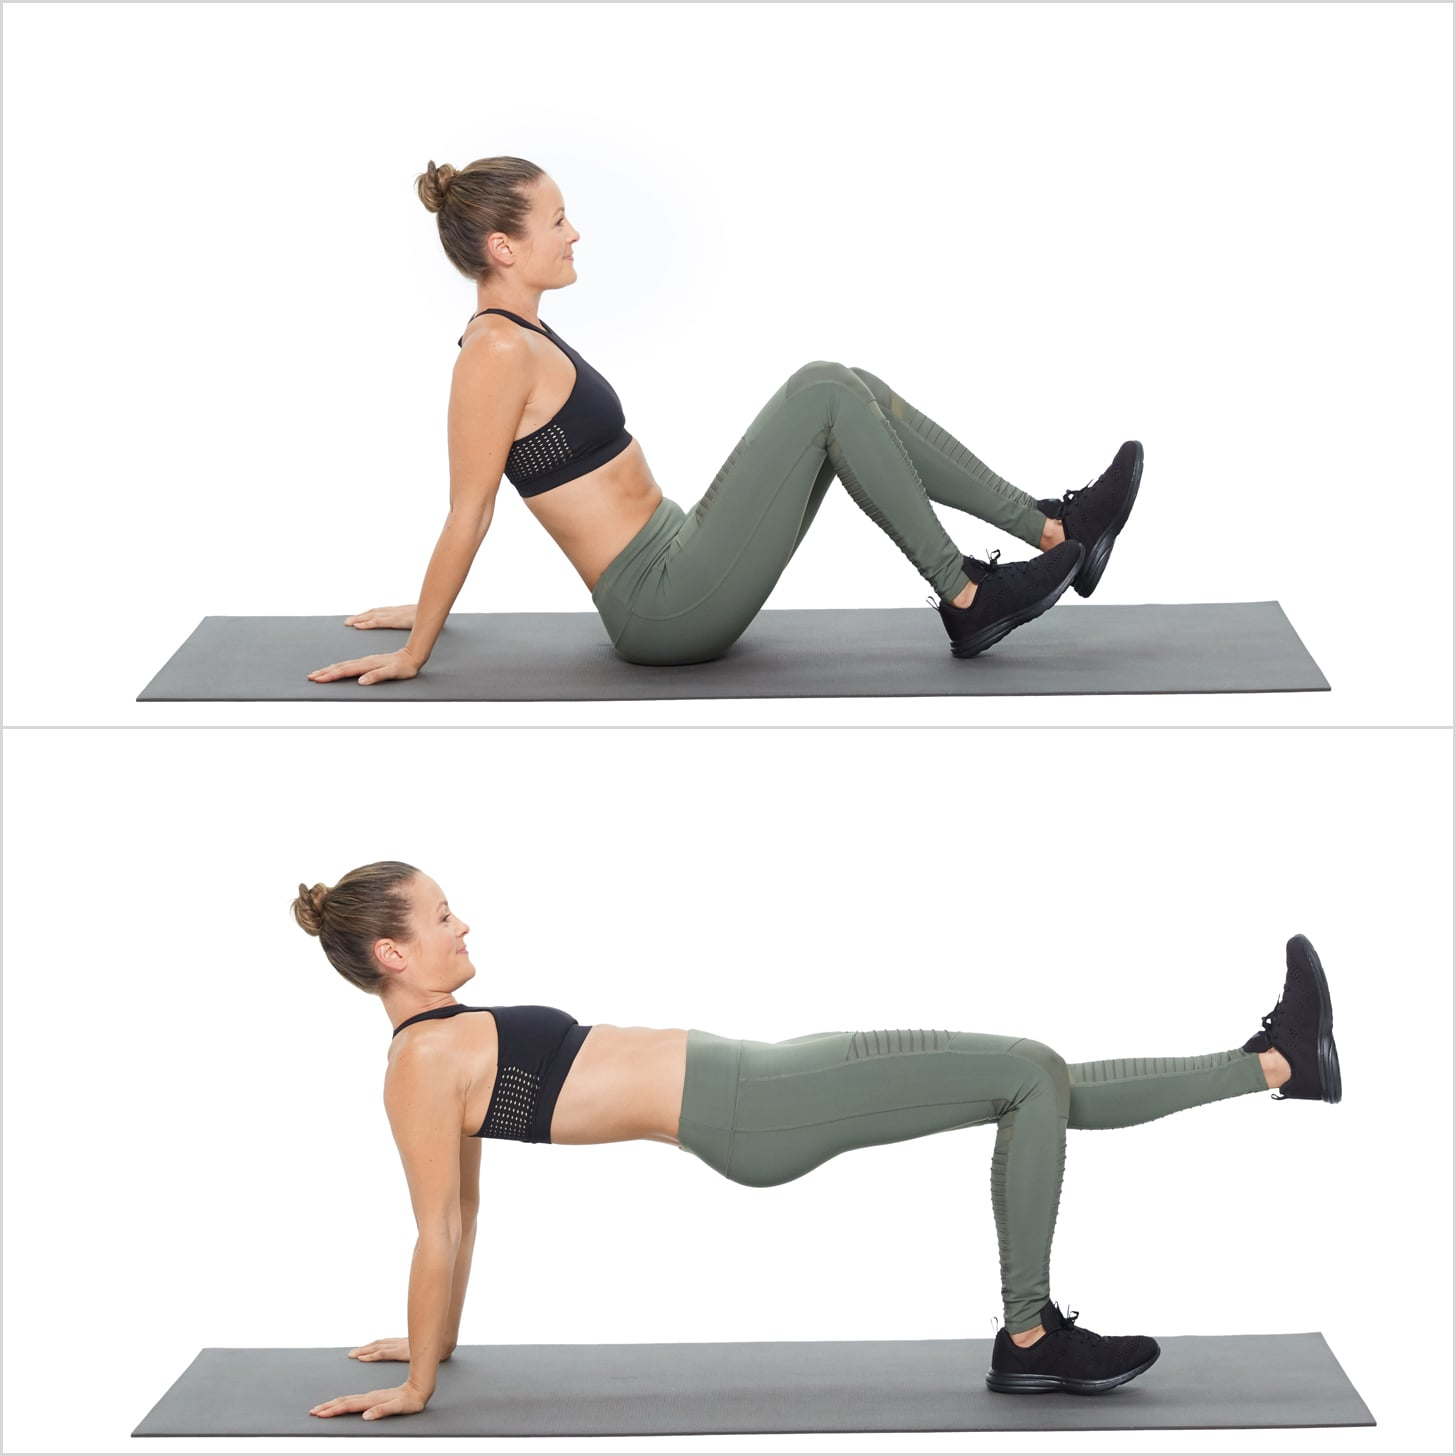 Step Aside, Squats: This Move Will Lift Your Butt to New Heights